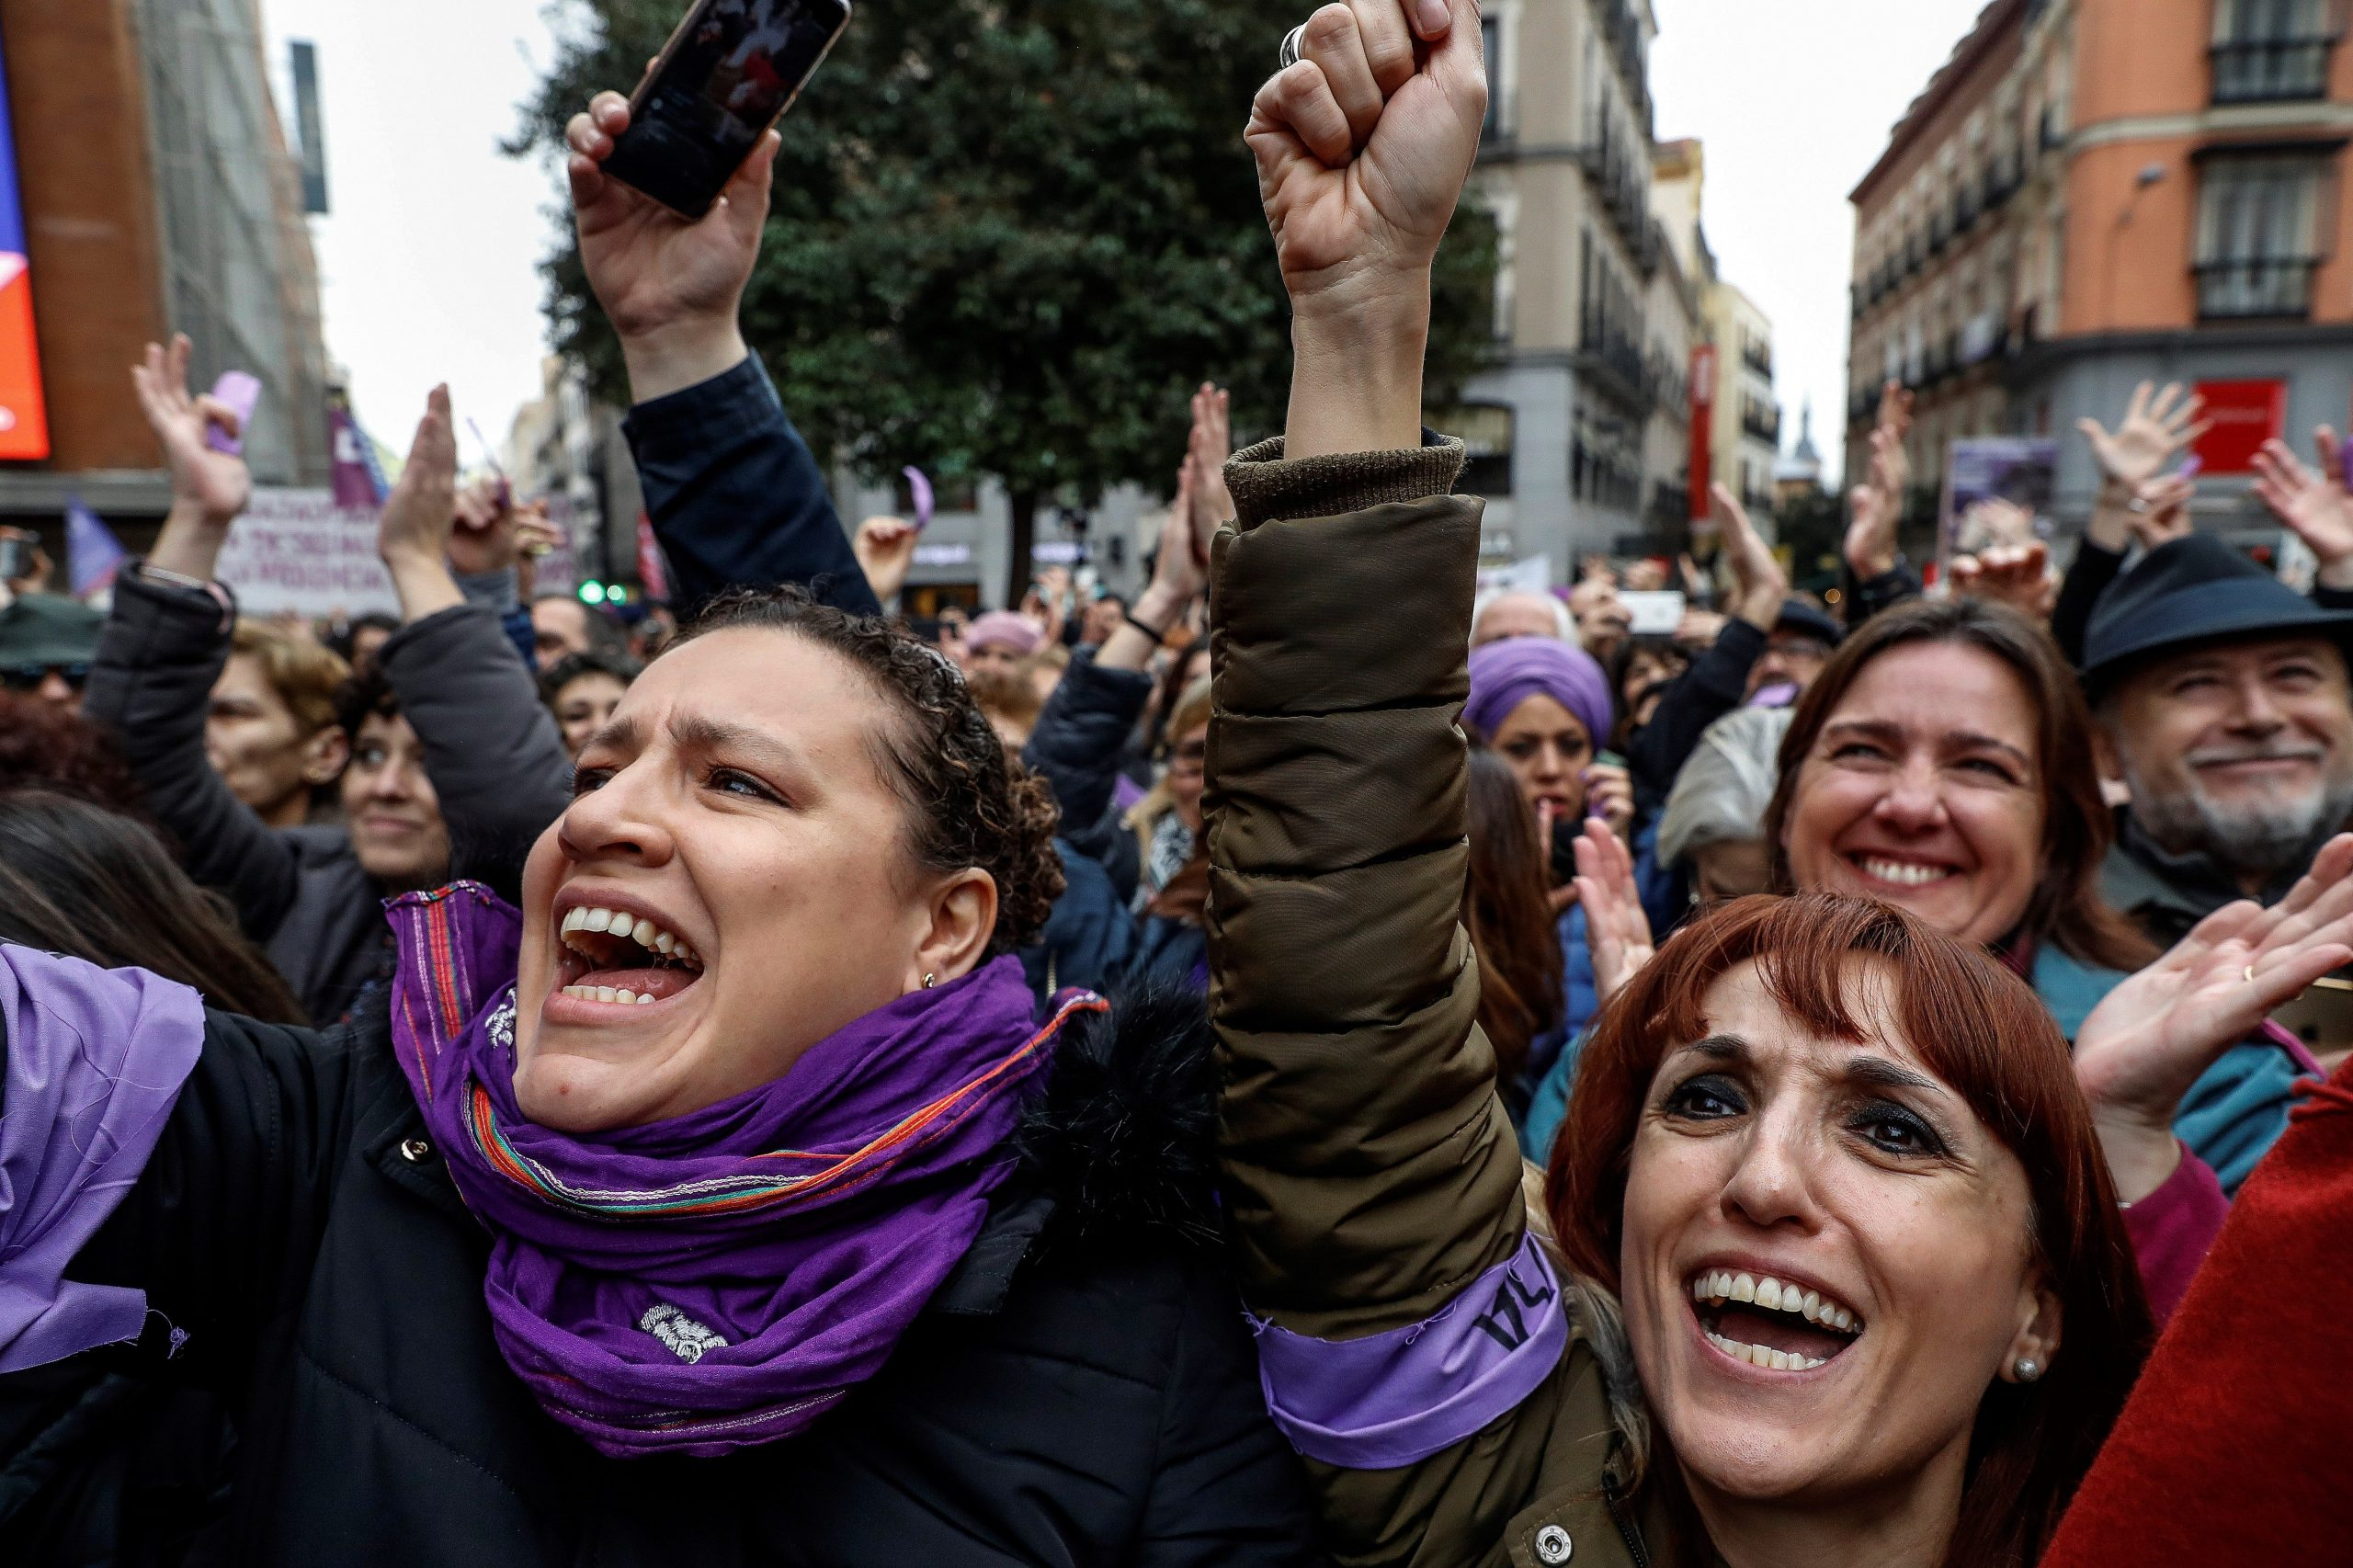 Press Roundup: Dispute Over Gender and Women's Rights